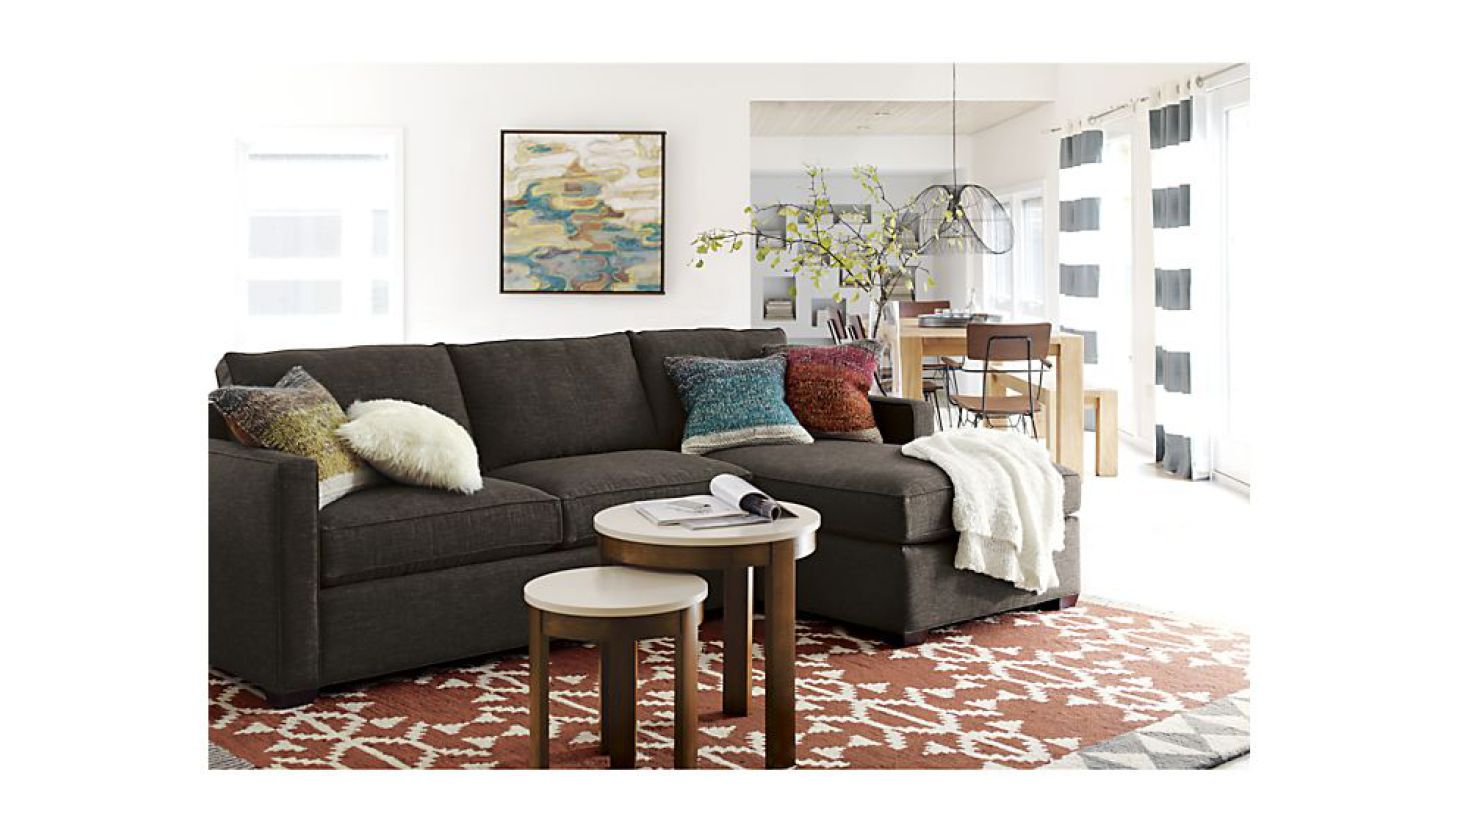 Crate & Barrel Lounge Sofa | Crate and Barrel Couch | Crate and Barrel Sofas and Loveseats